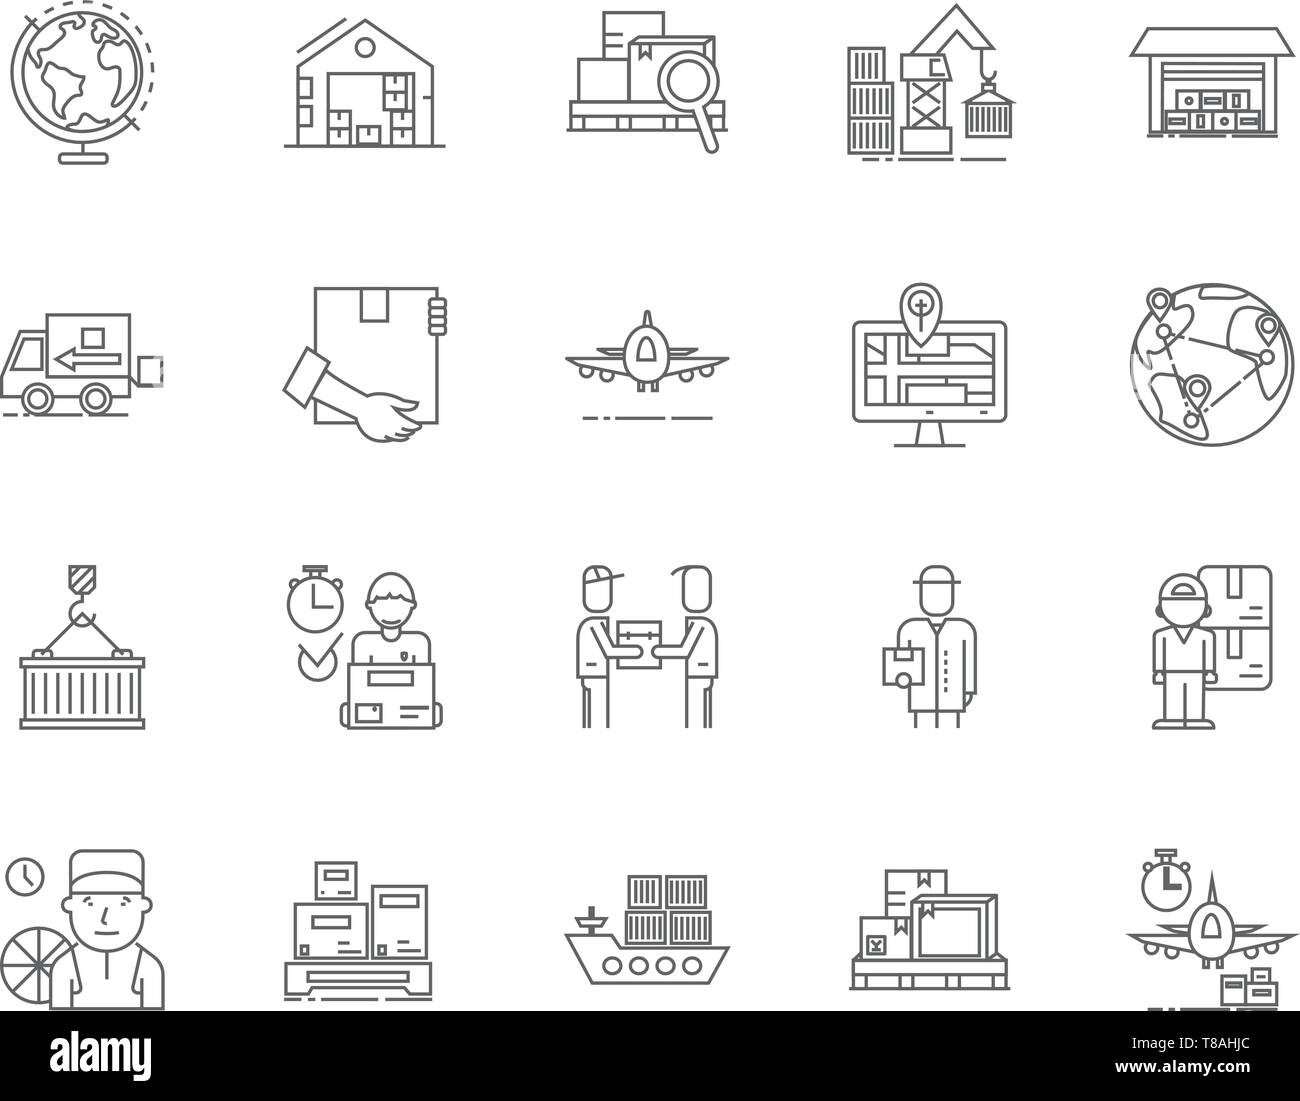 Export and import agents line icons, signs, vector set, outline illustration concept  - Stock Vector